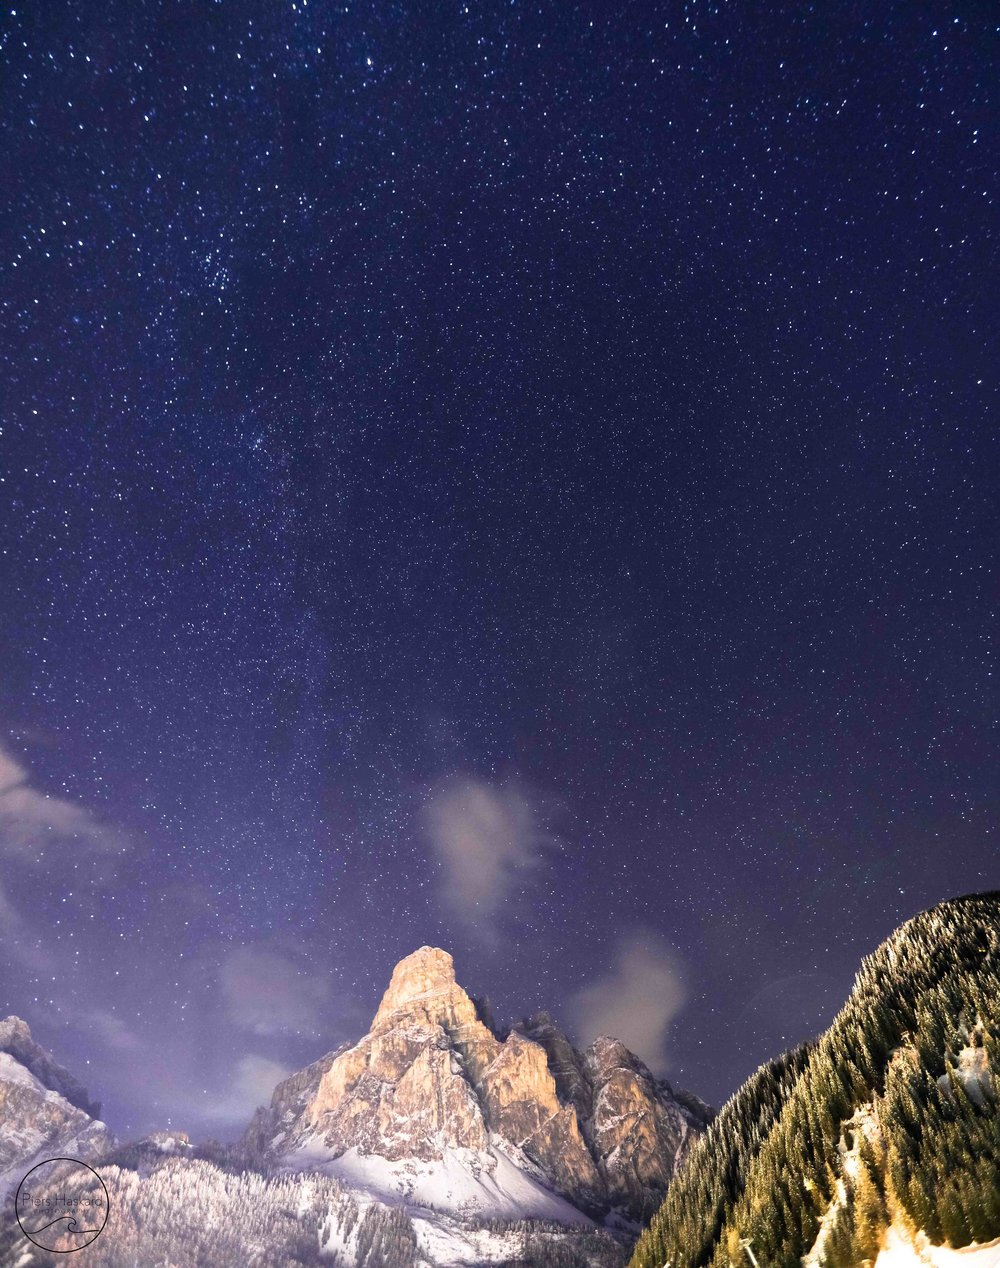 Sassongher Mountain looming above Corvara village on a clear night.